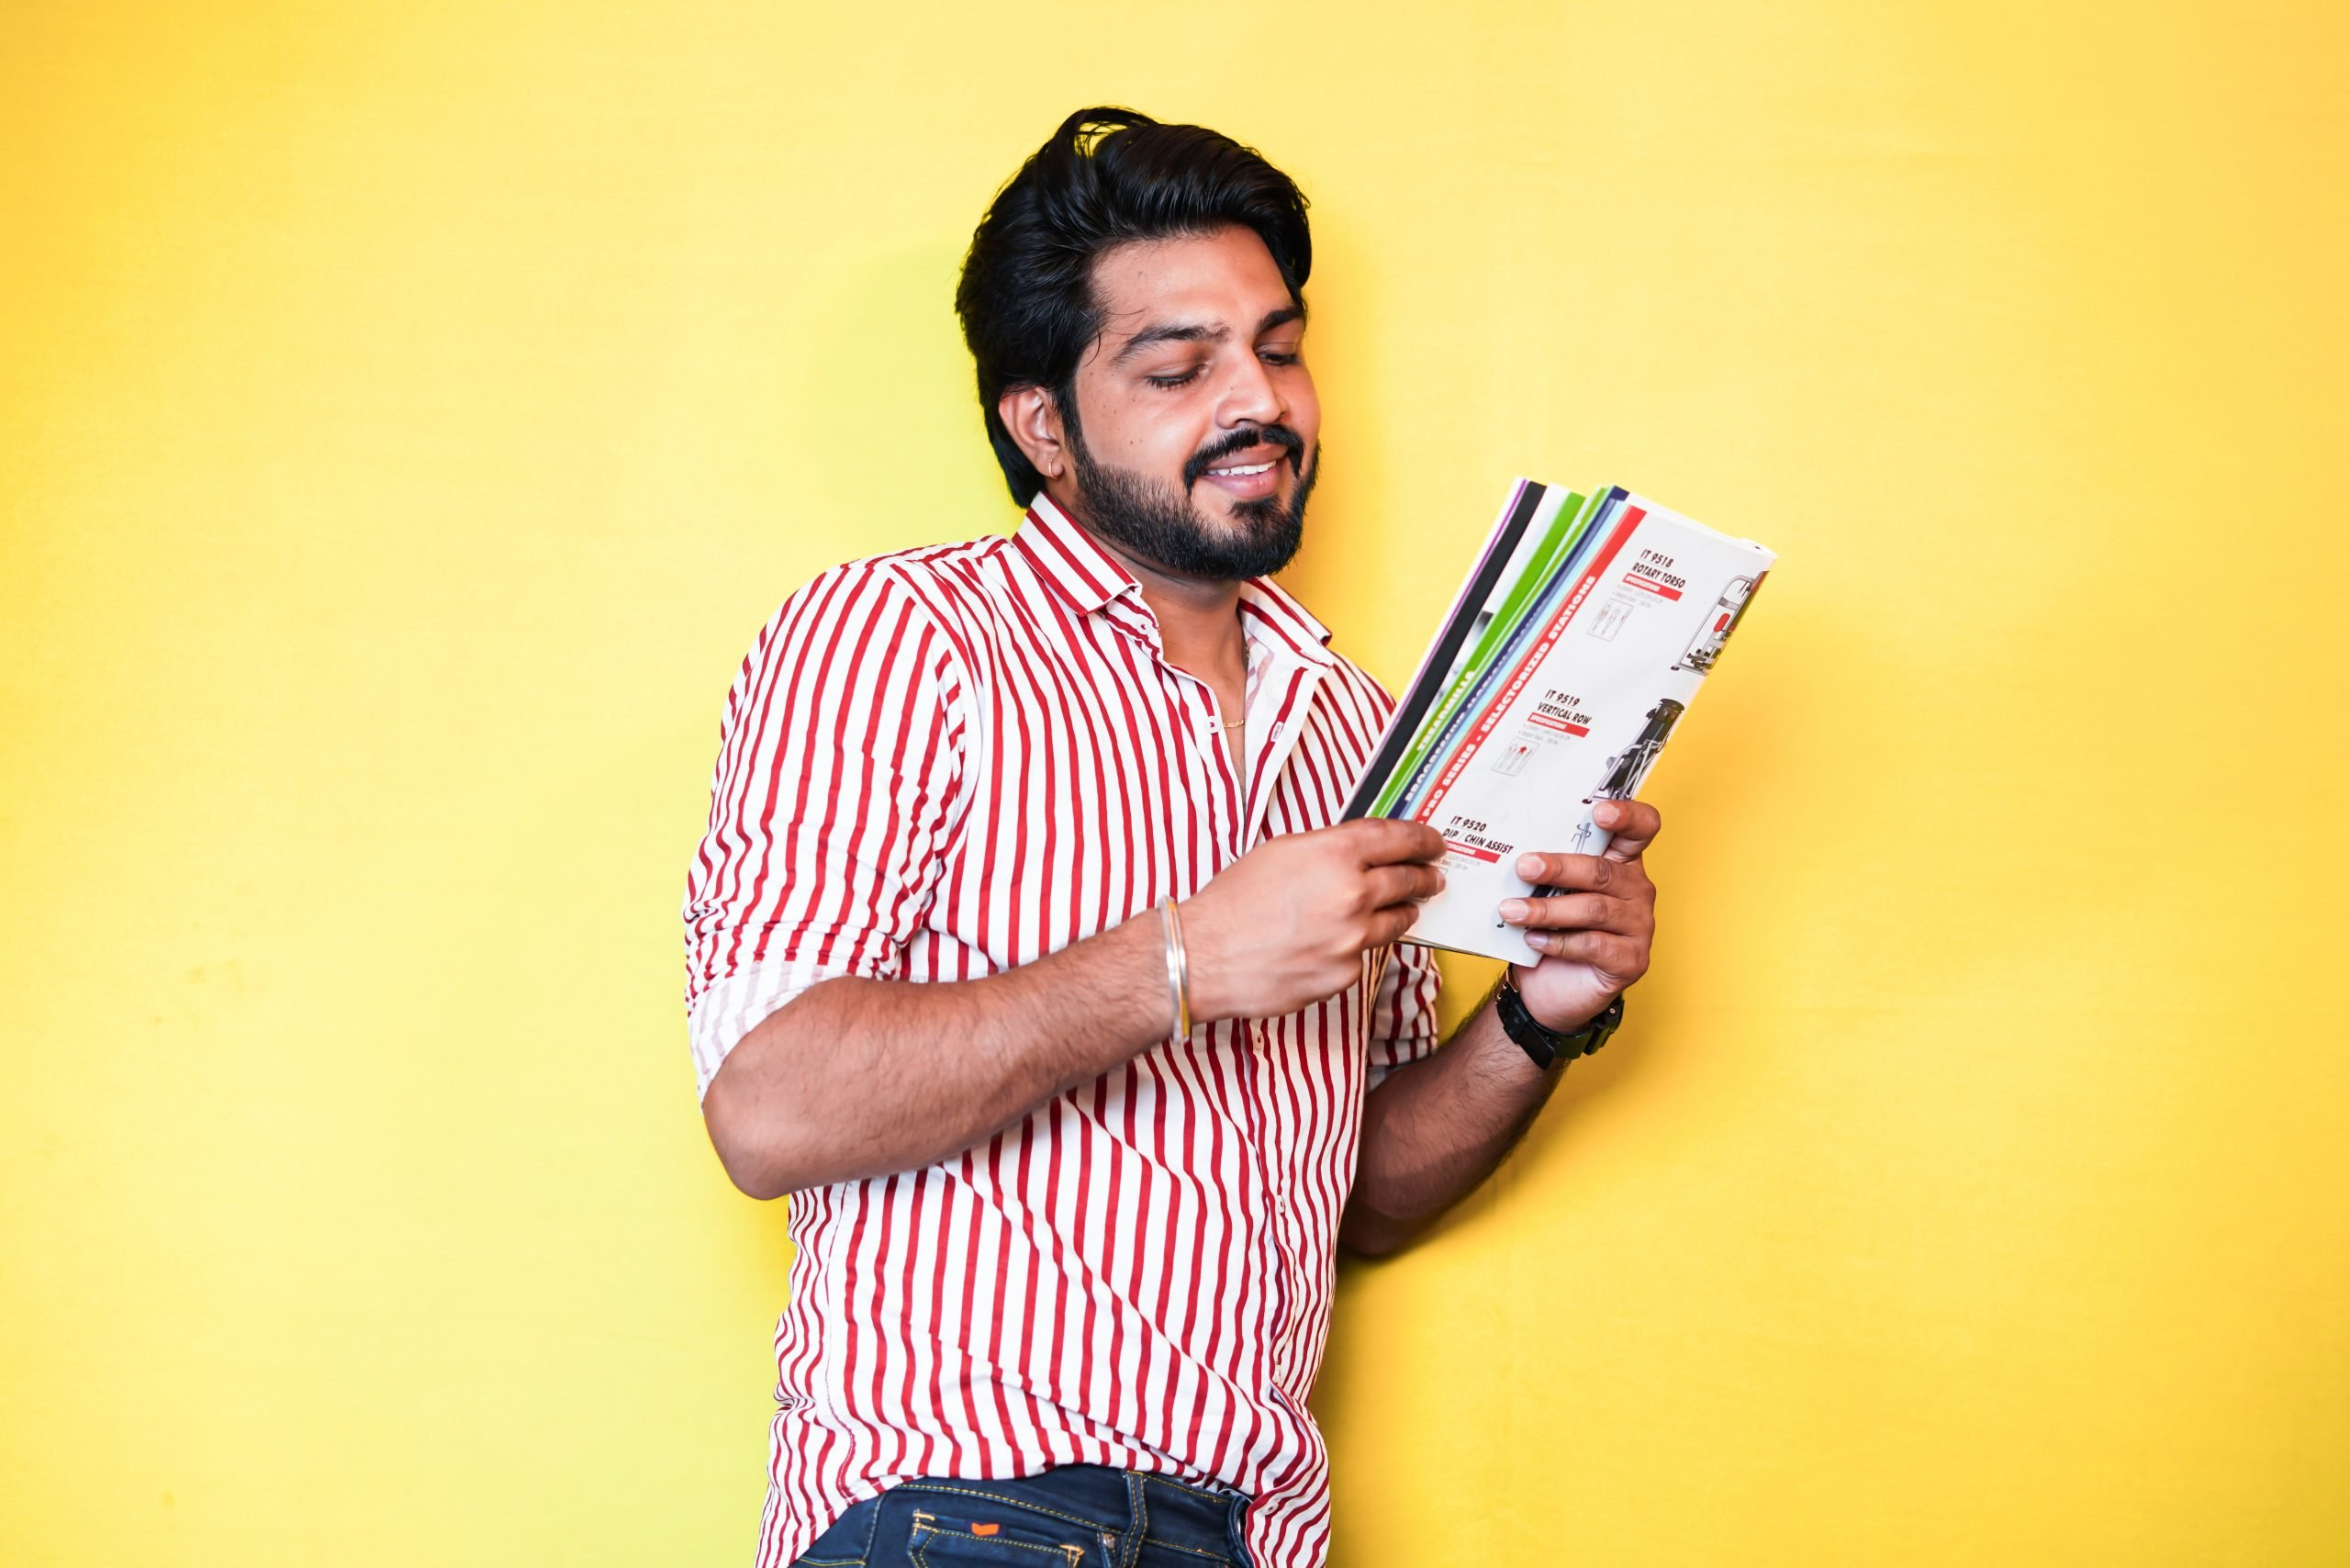 Young indian man leaning against wall reading book